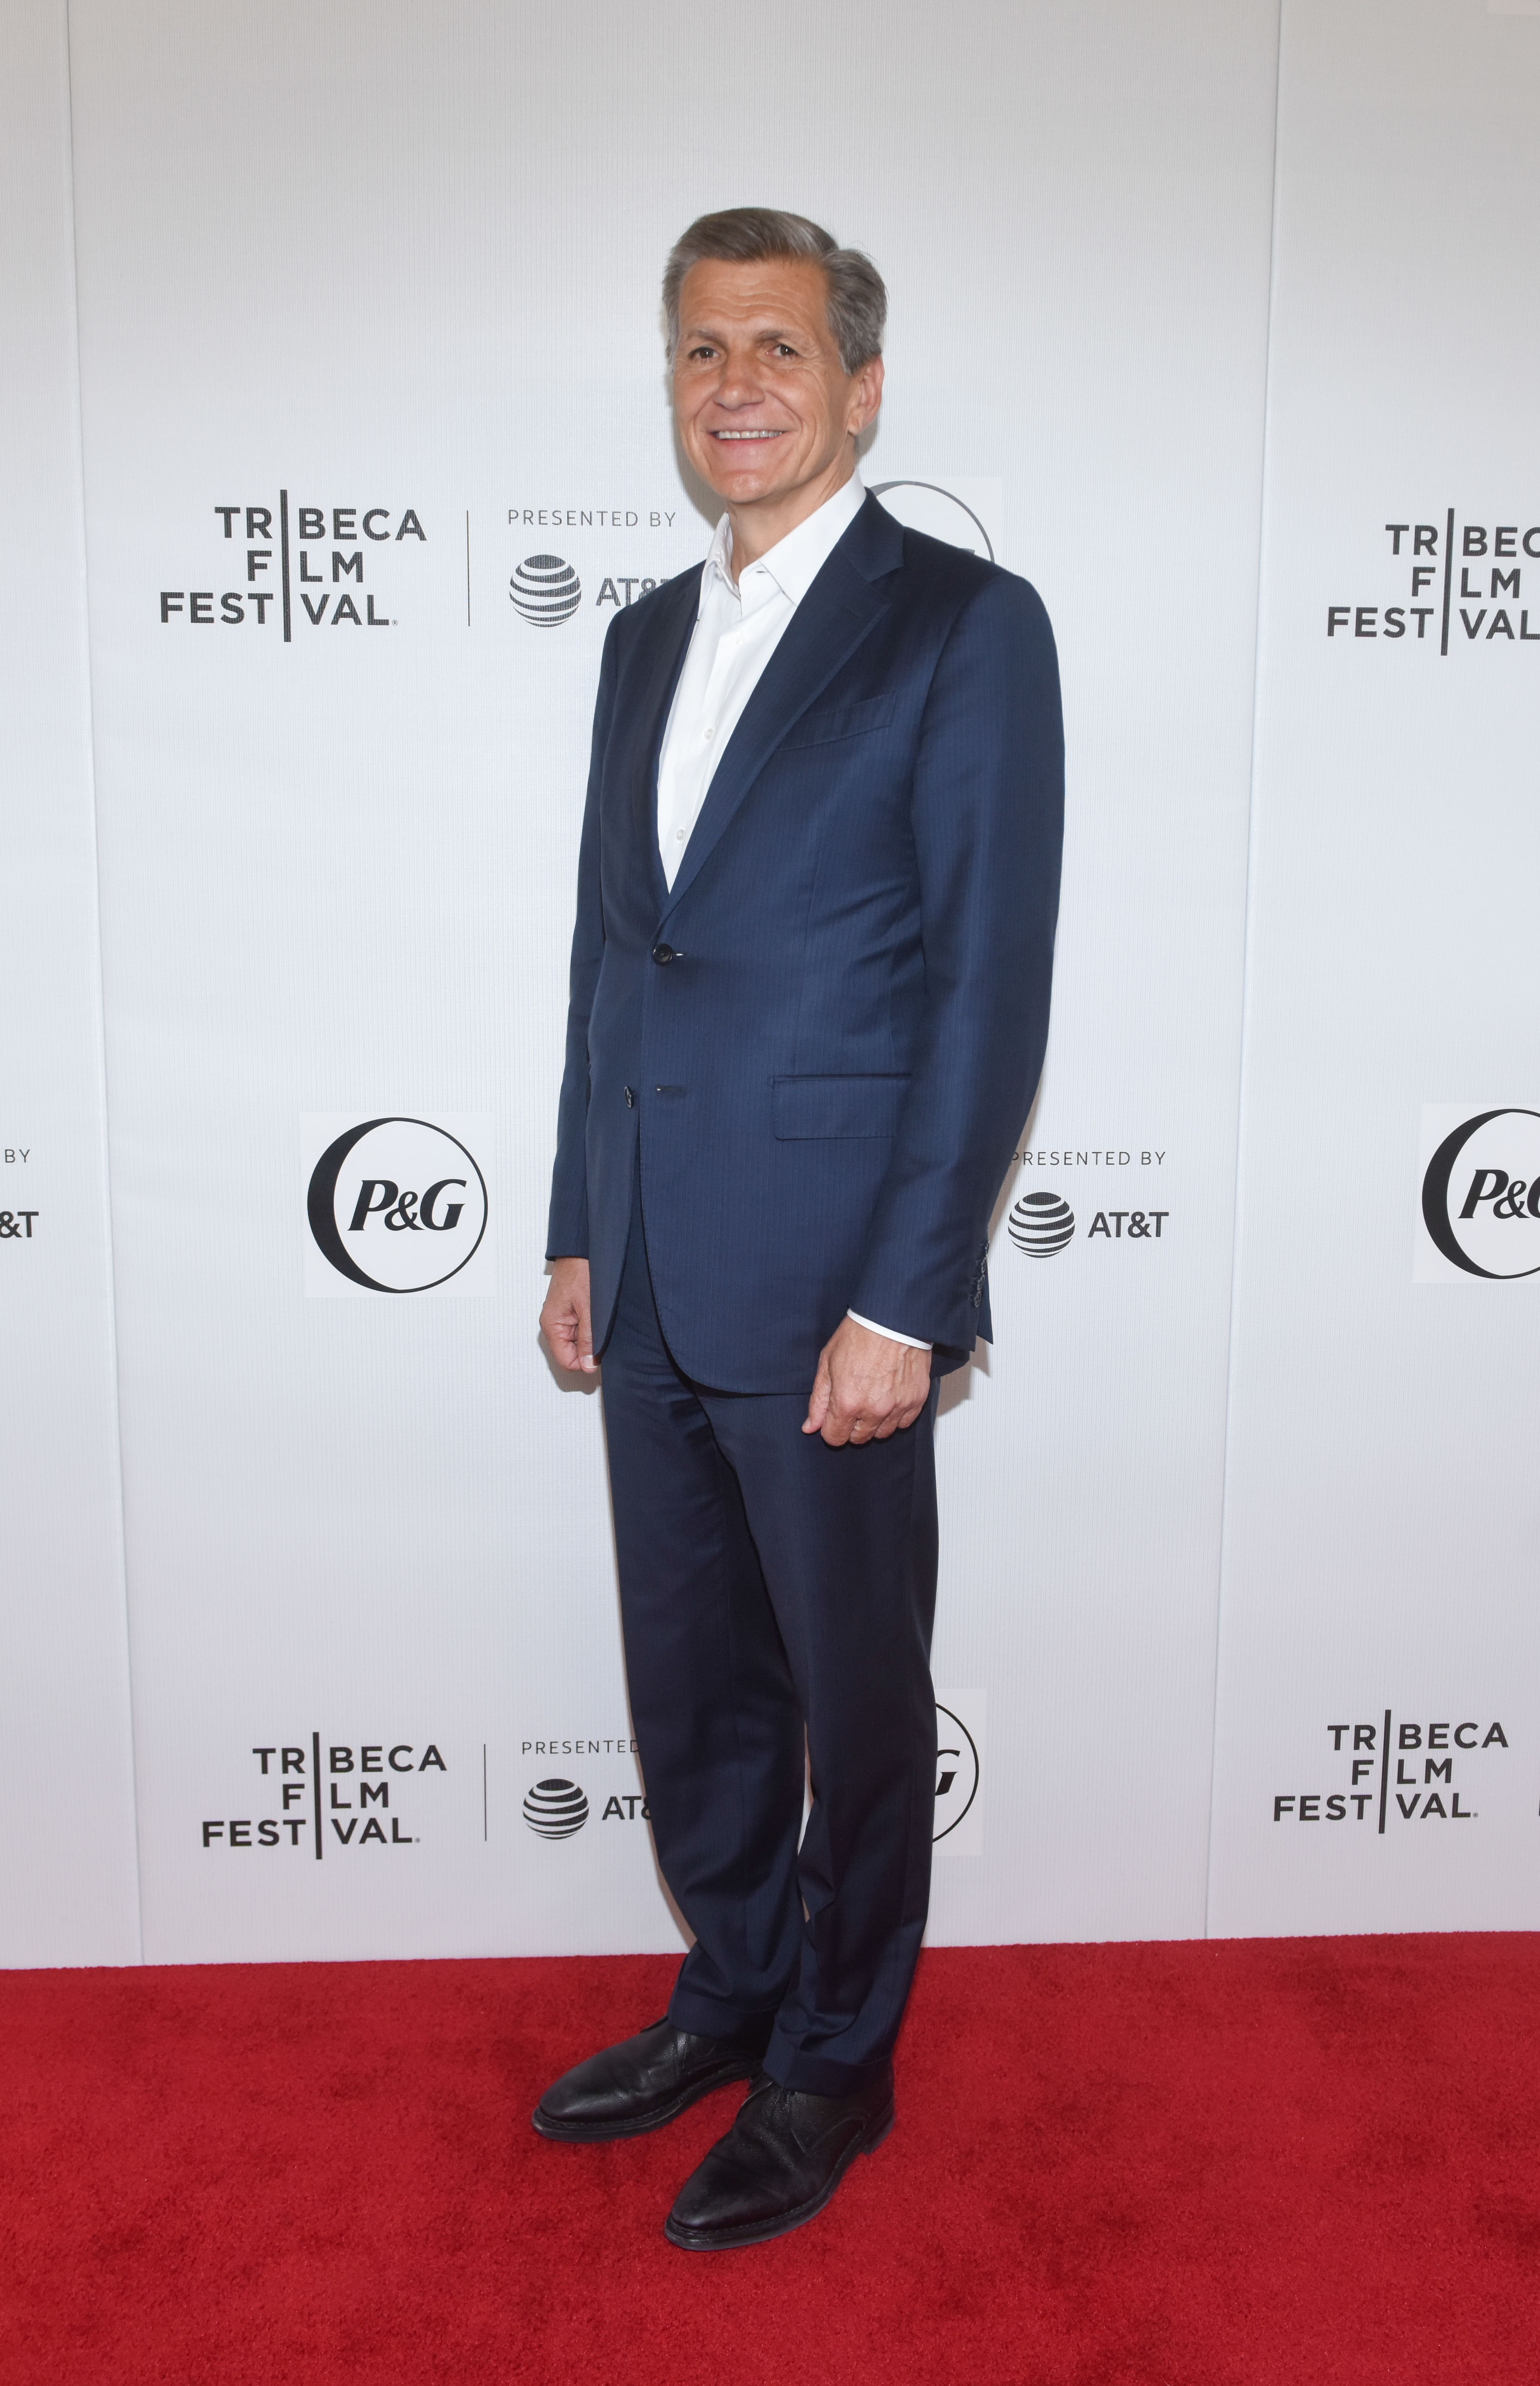 Marc Pritchard attends Tribeca Talks and the Premiere of The Queen Collective Shorts - 2019 Tribeca Film Festival at Spring Studio on April 26, 2019 in New York, NY. (Photo by Jeremy Smith/imageSPACE/Sipa USA)